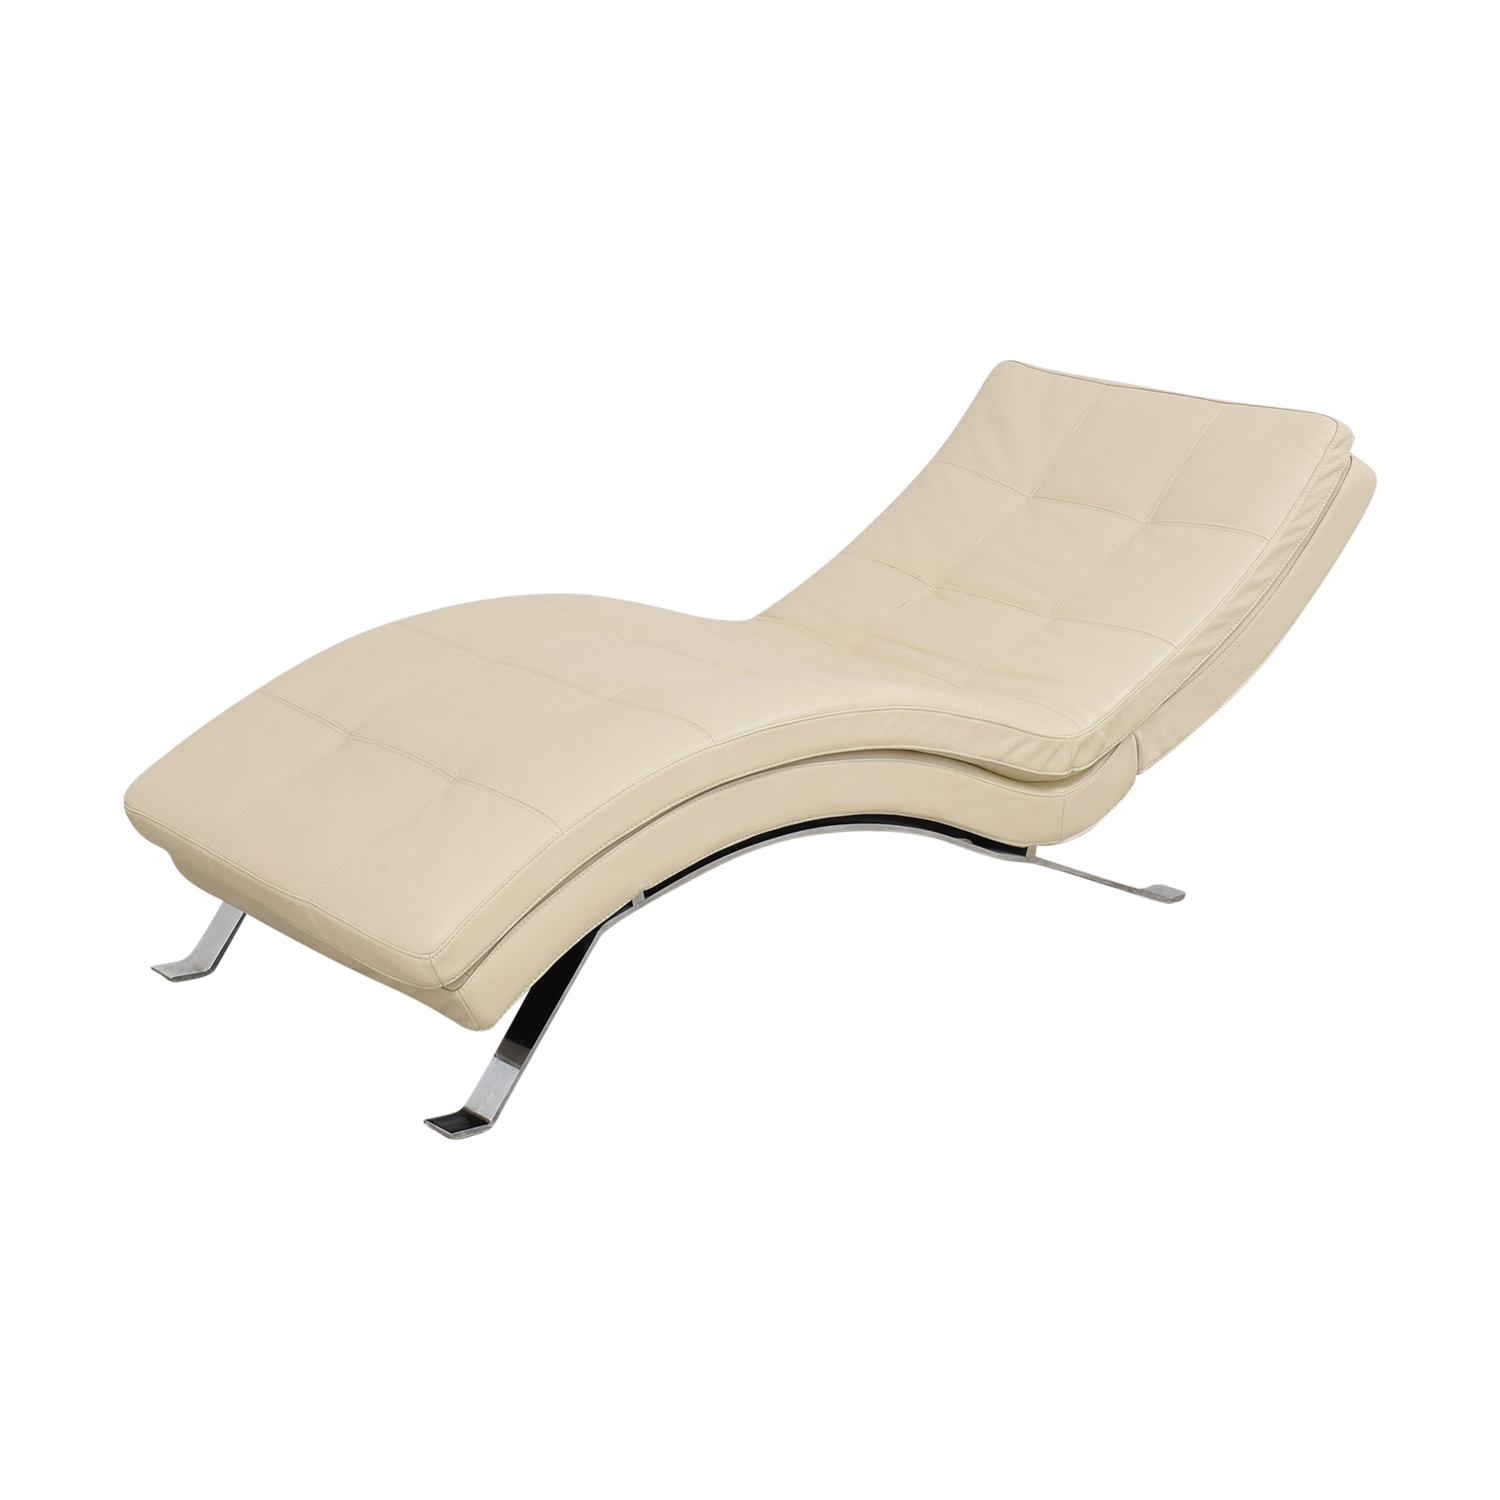 Lind Lind 903 Recliner Armless Long Chaise price